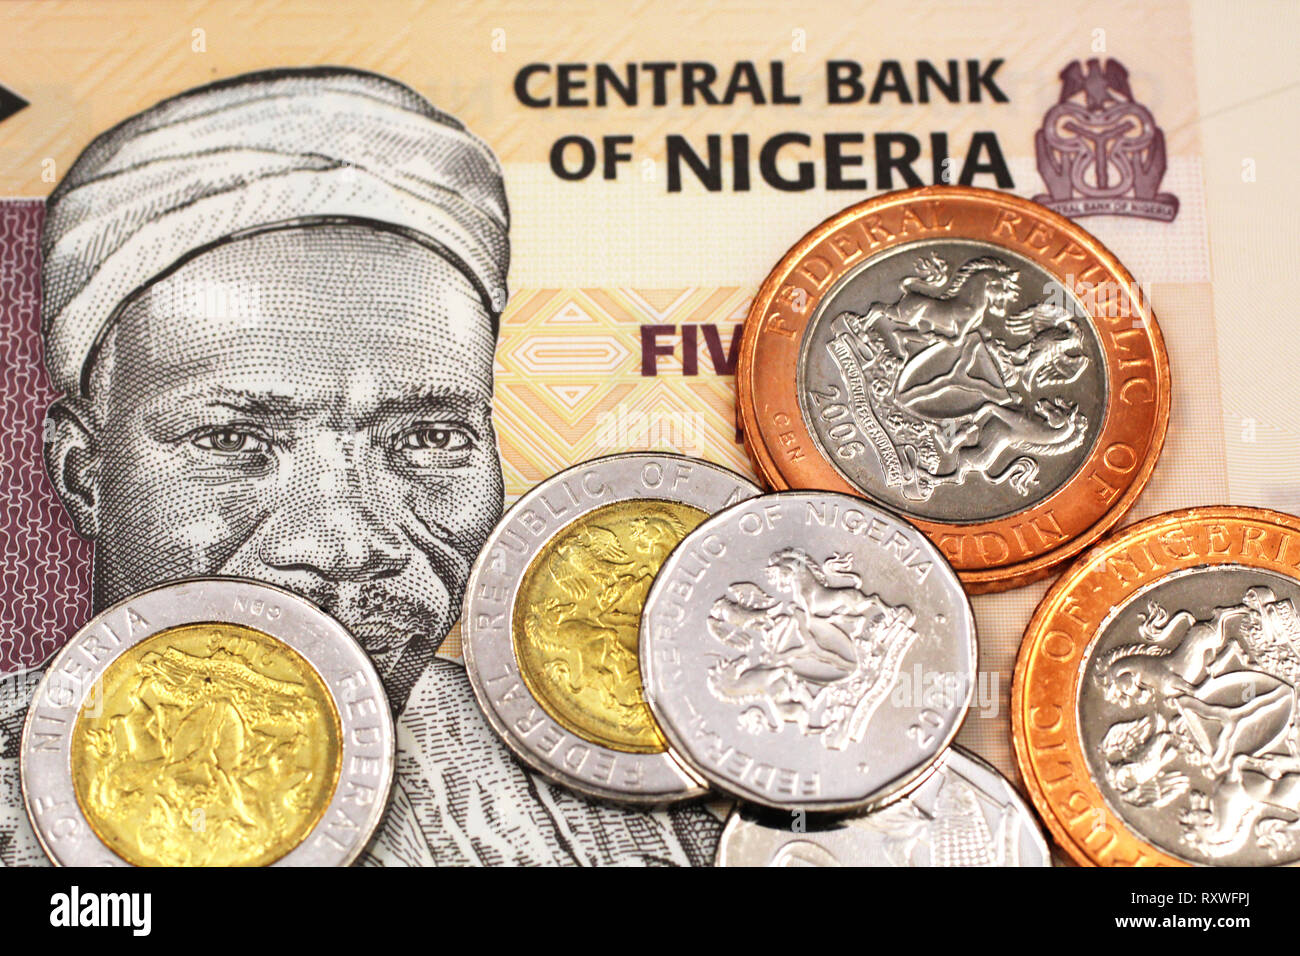 A macro image of miscellaneous Nigerain coins on a five Naira bank note from Nigeria - Stock Image